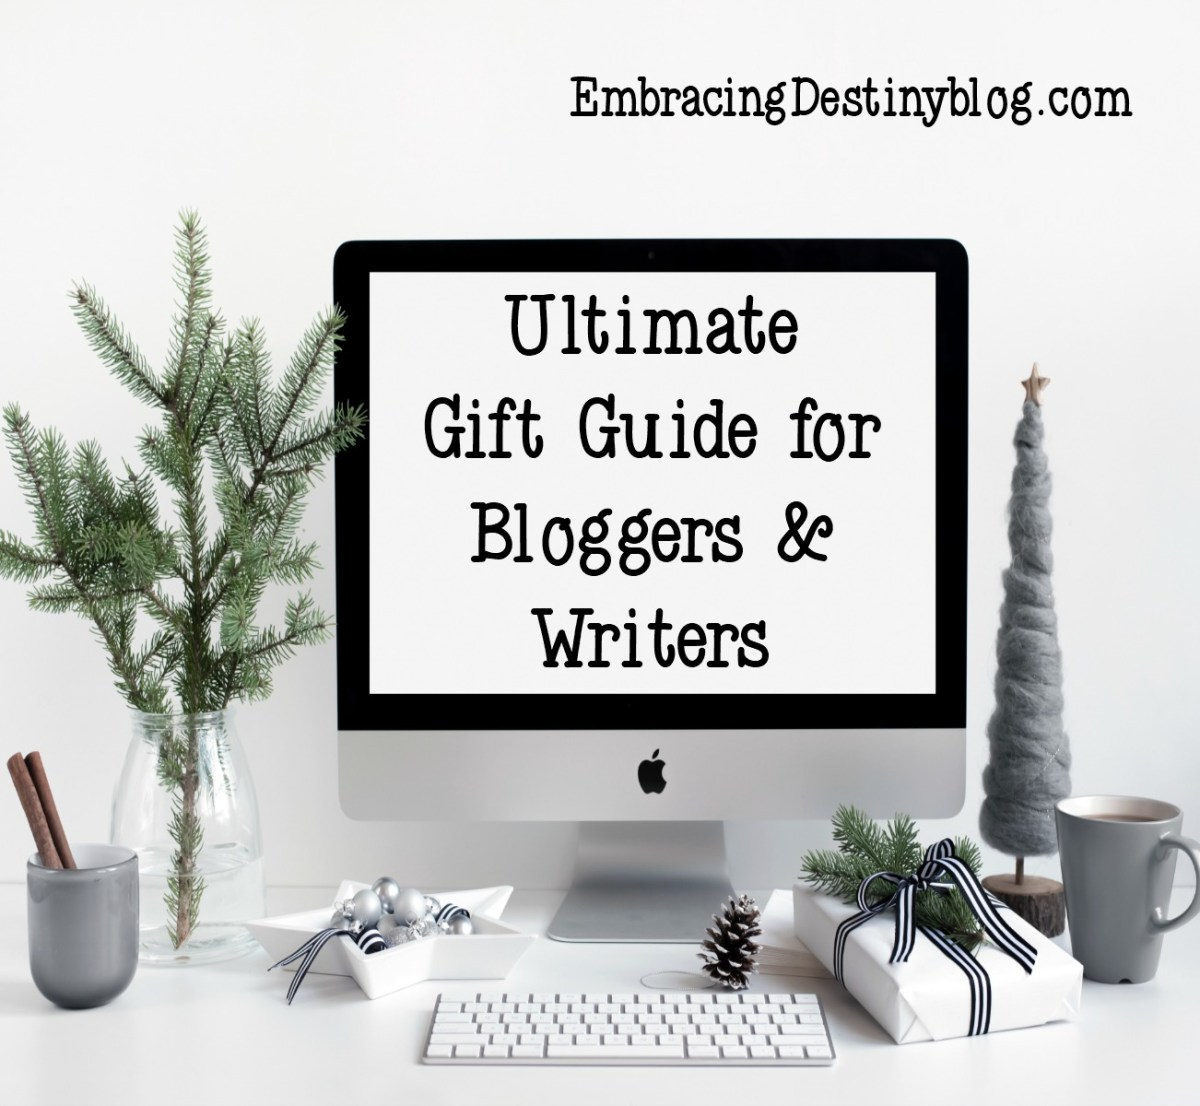 The Ultimate Gift Guide for Bloggers and Writers